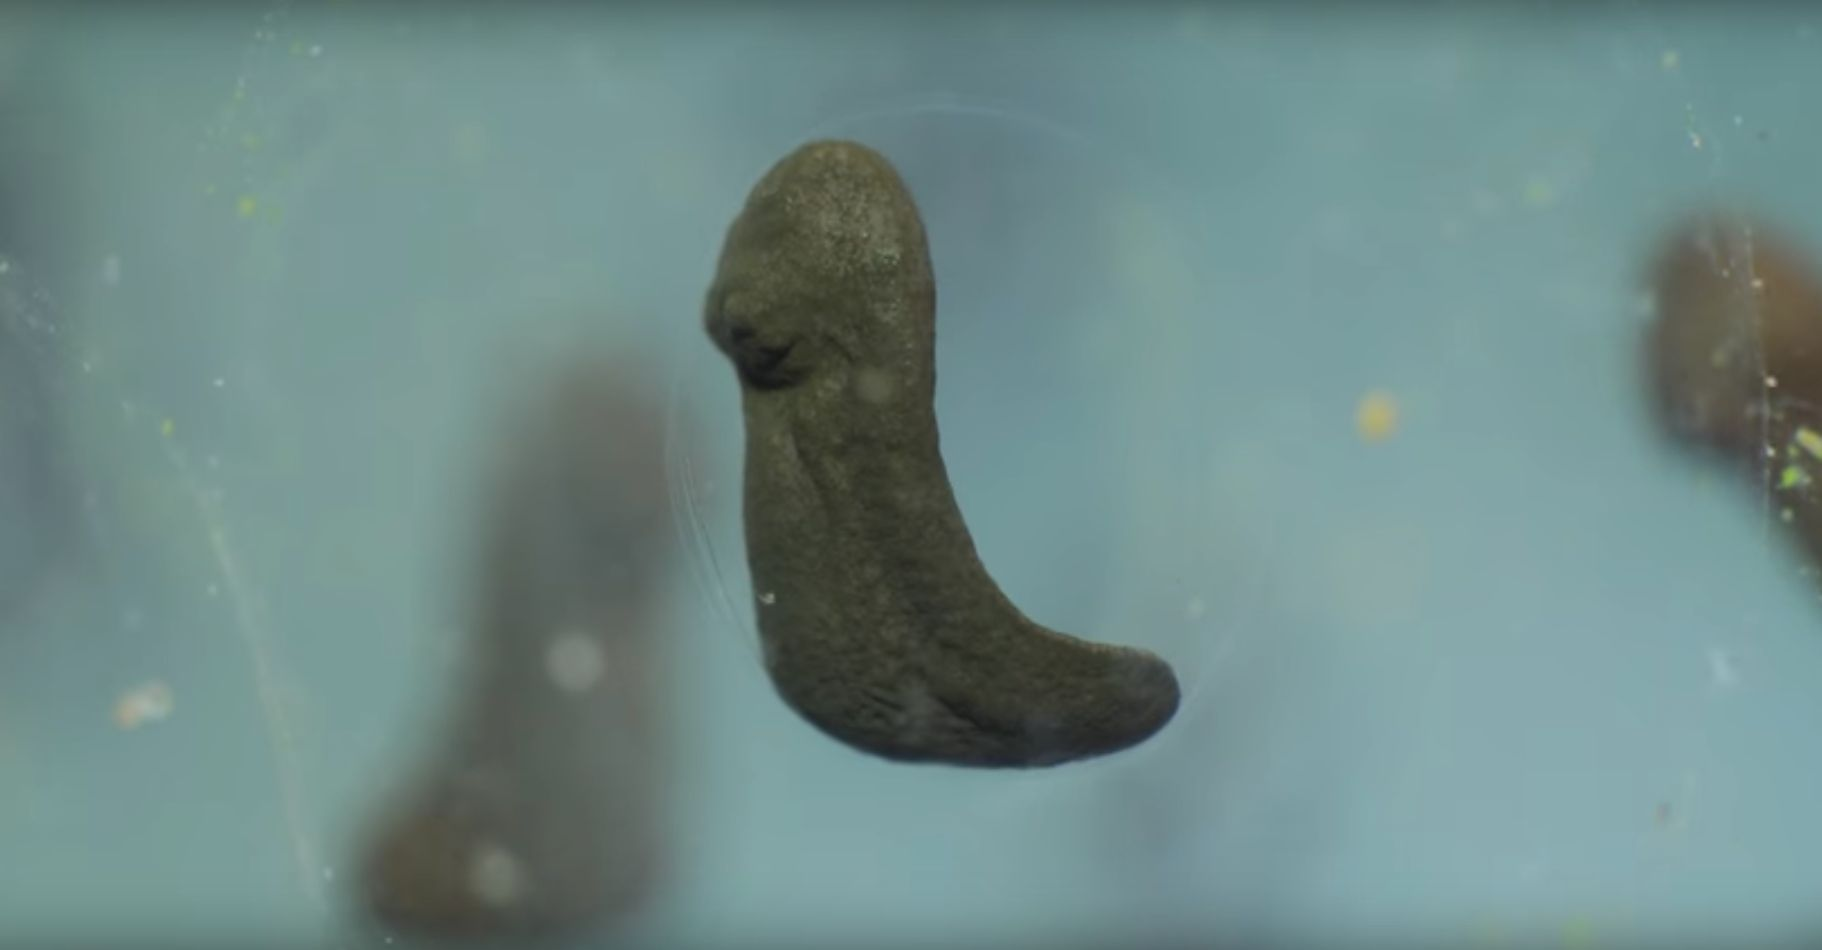 This Time-Lapse Video Shows Cells Dividing Into A Tadpole, Without Using